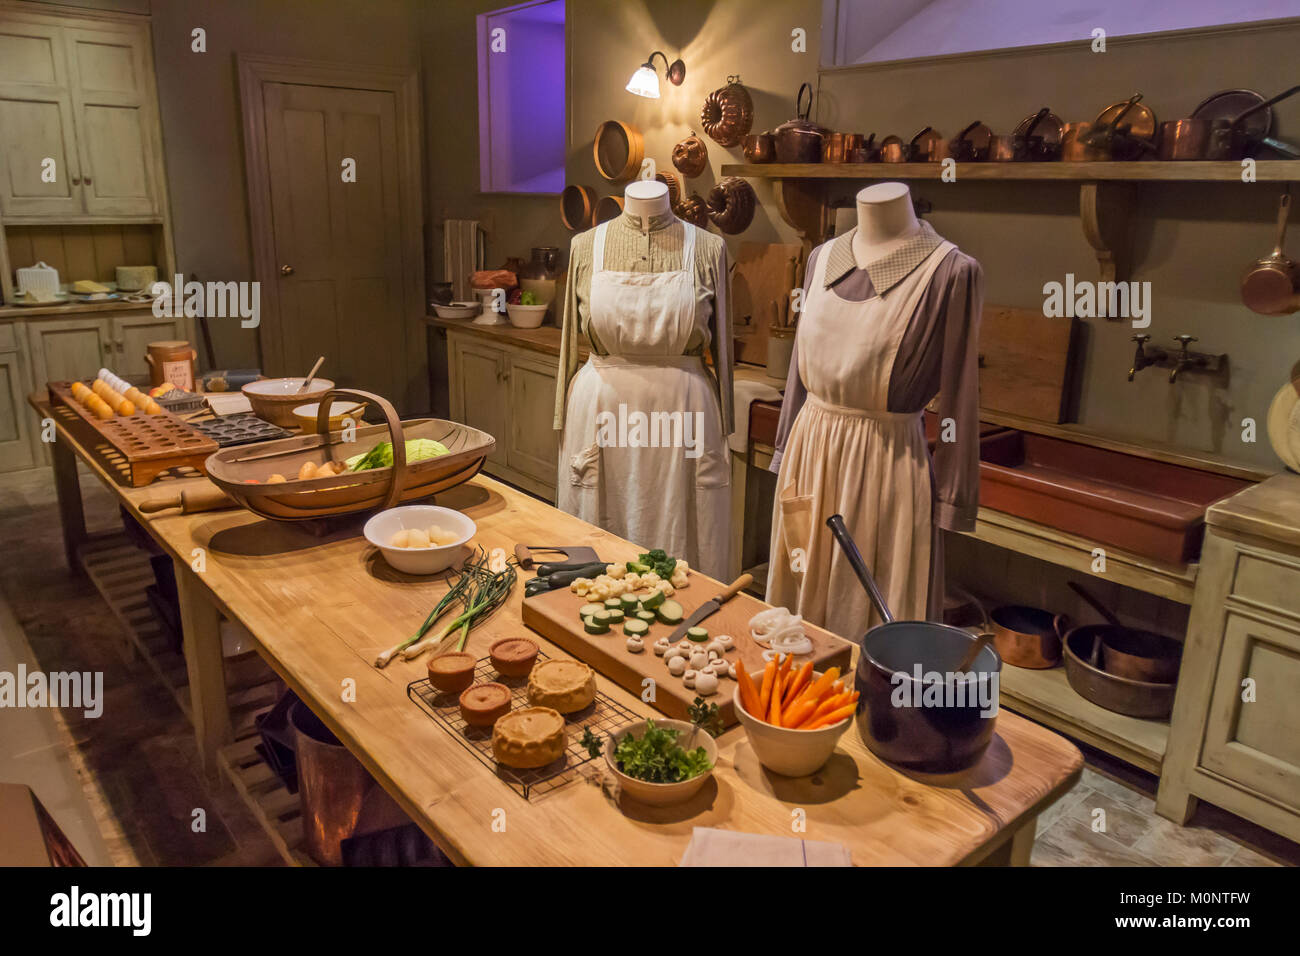 A Downton Abbey exhibit on display for fans of the British show. - Stock Image